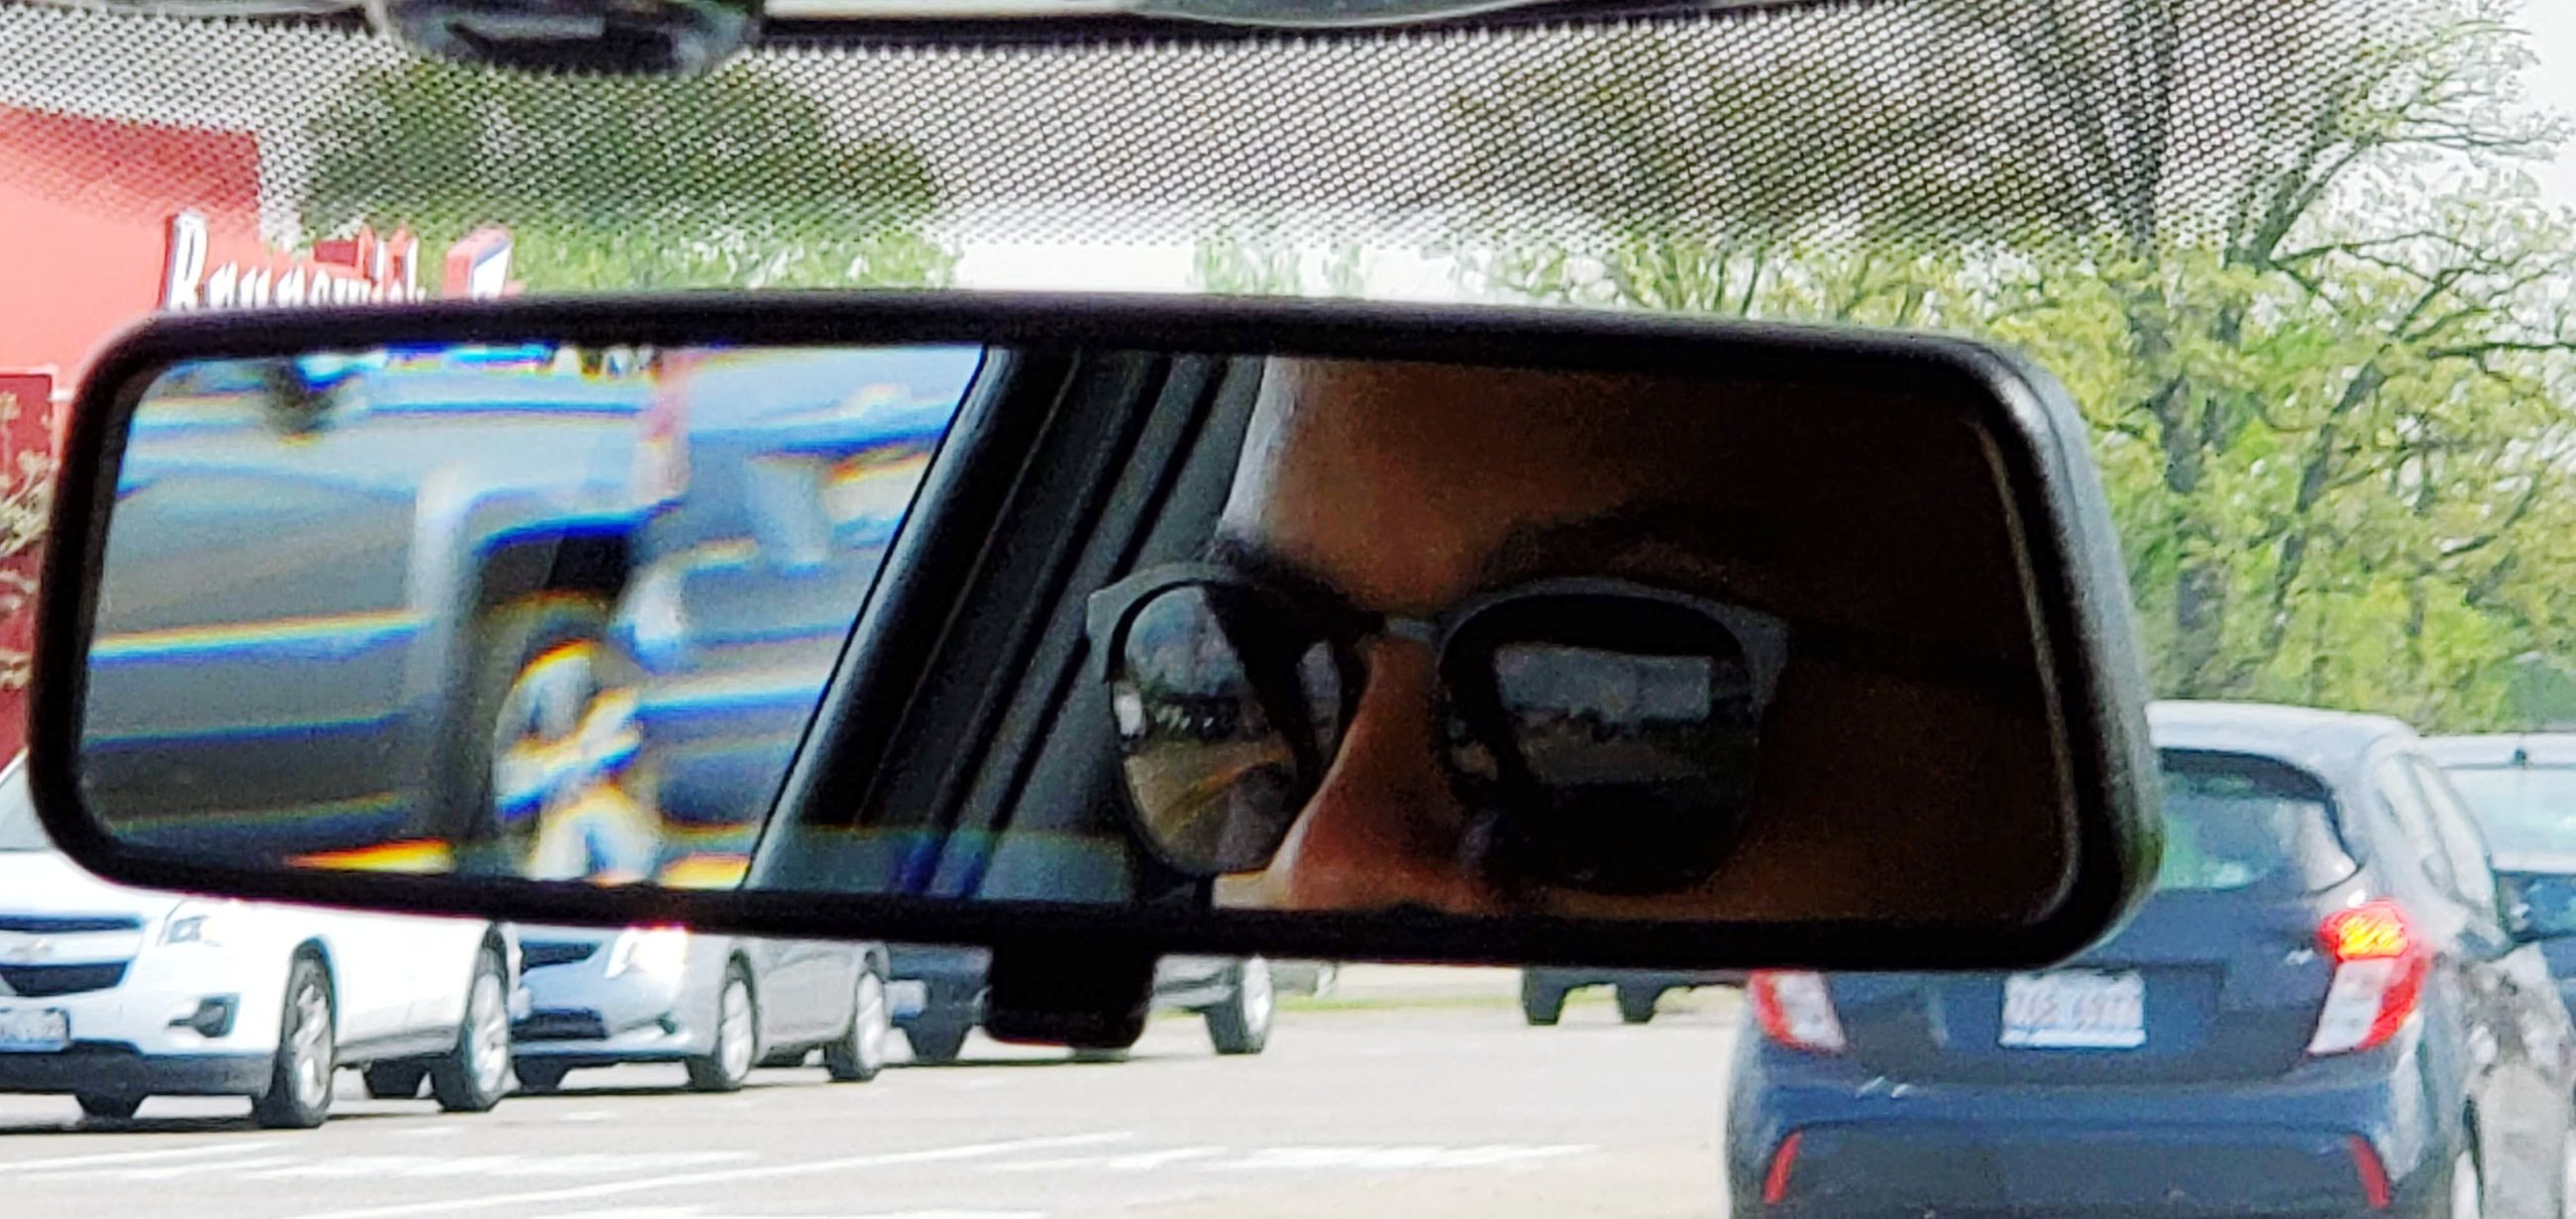 mode of transportation, transportation, car, motor vehicle, land vehicle, glass - material, reflection, rear-view mirror, one person, close-up, side-view mirror, real people, mirror, photography themes, technology, communication, day, travel, transparent, driving, outdoors, road trip